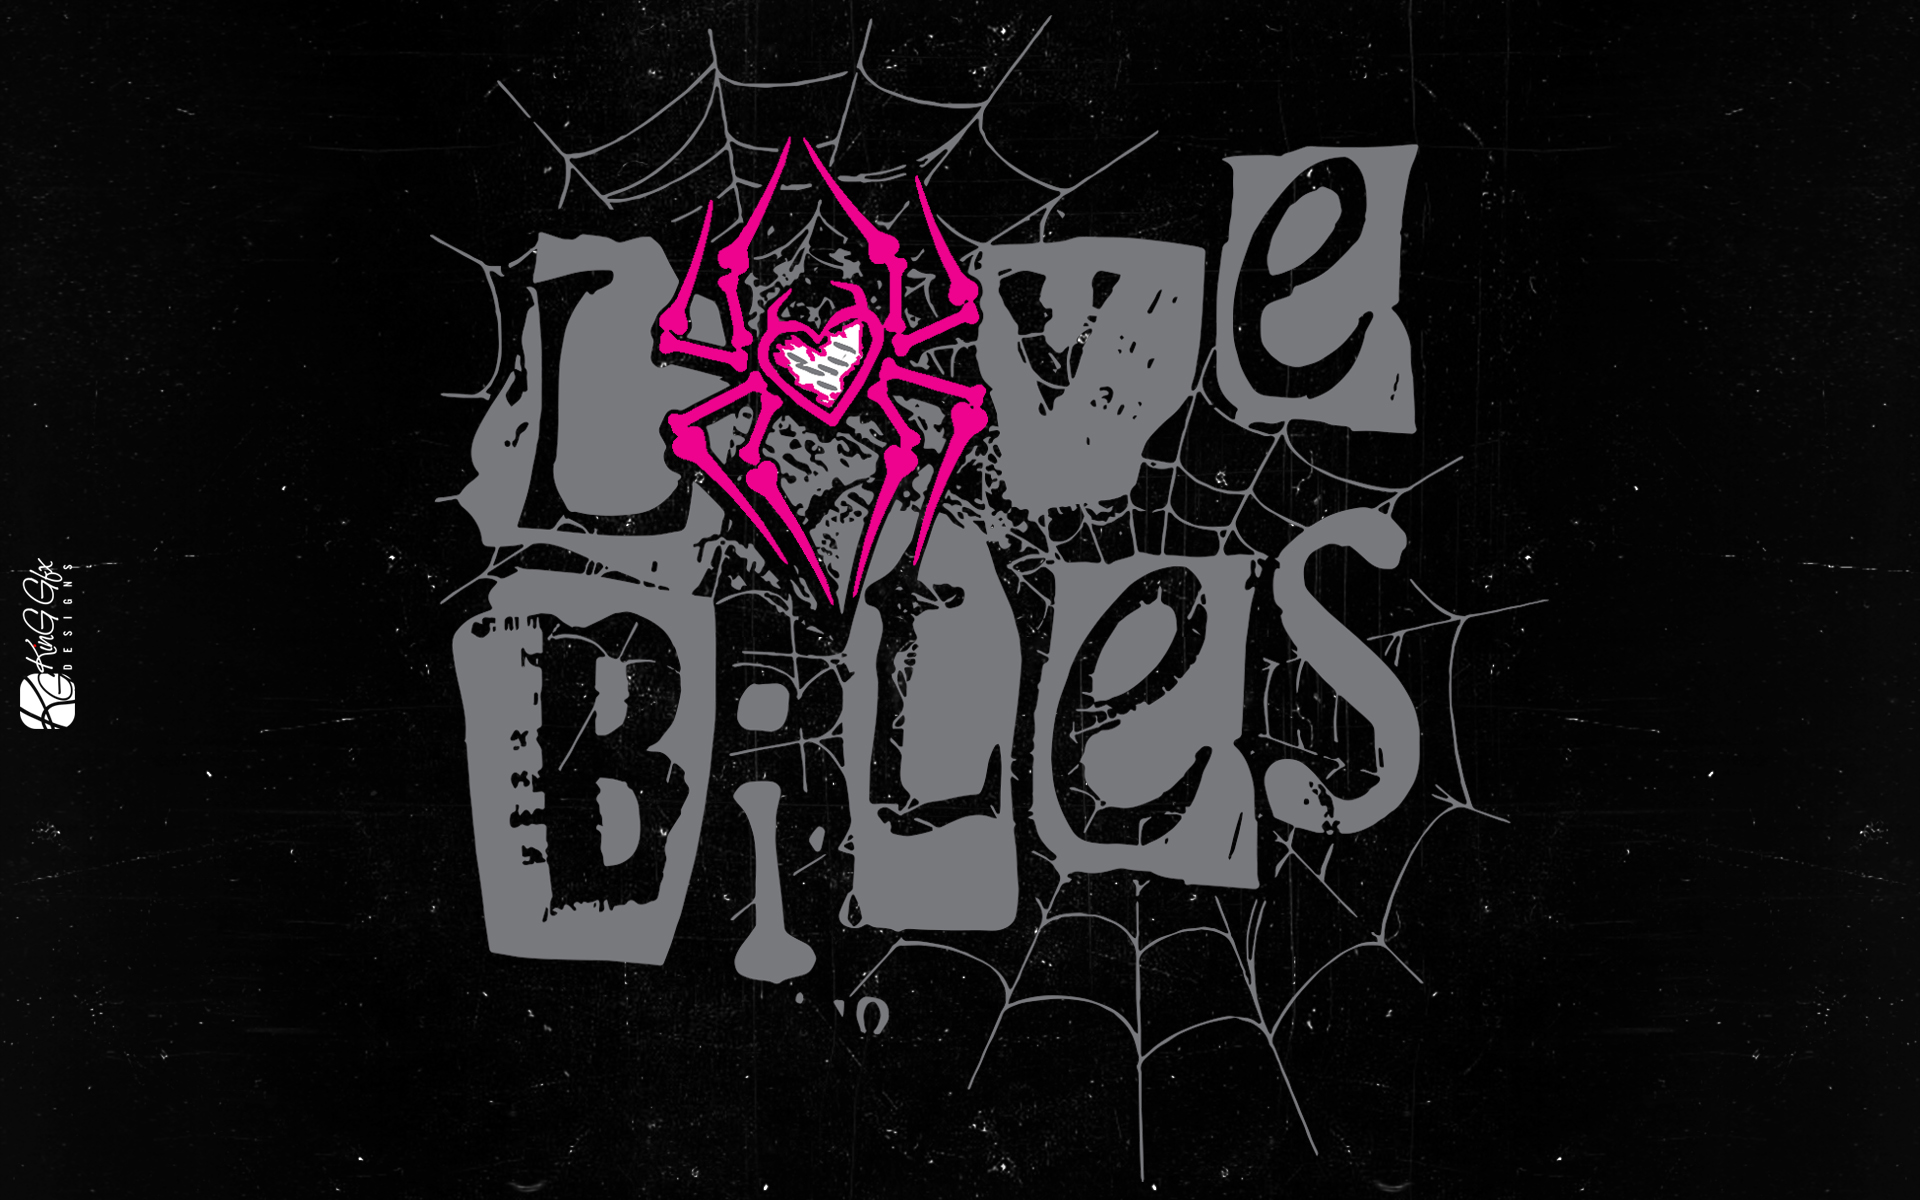 AJ Lee 'Love Bites' Wallpaper by KINGGFX1